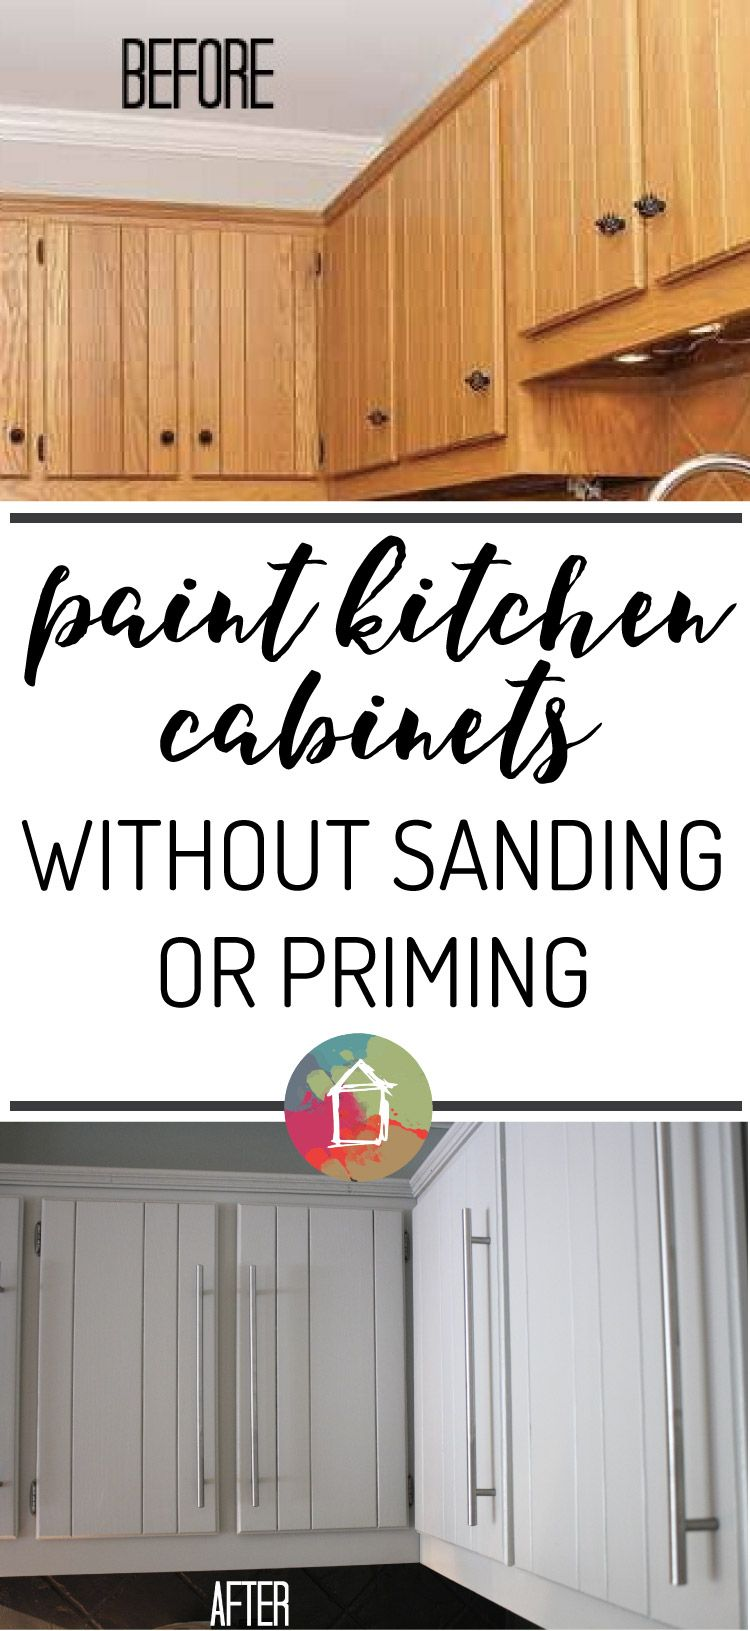 You Can Paint Your Kitchen Cabinets Without Sanding Or Priming. That Makes  The Project Totally Doable. I Canu0027t Wait To Try It!